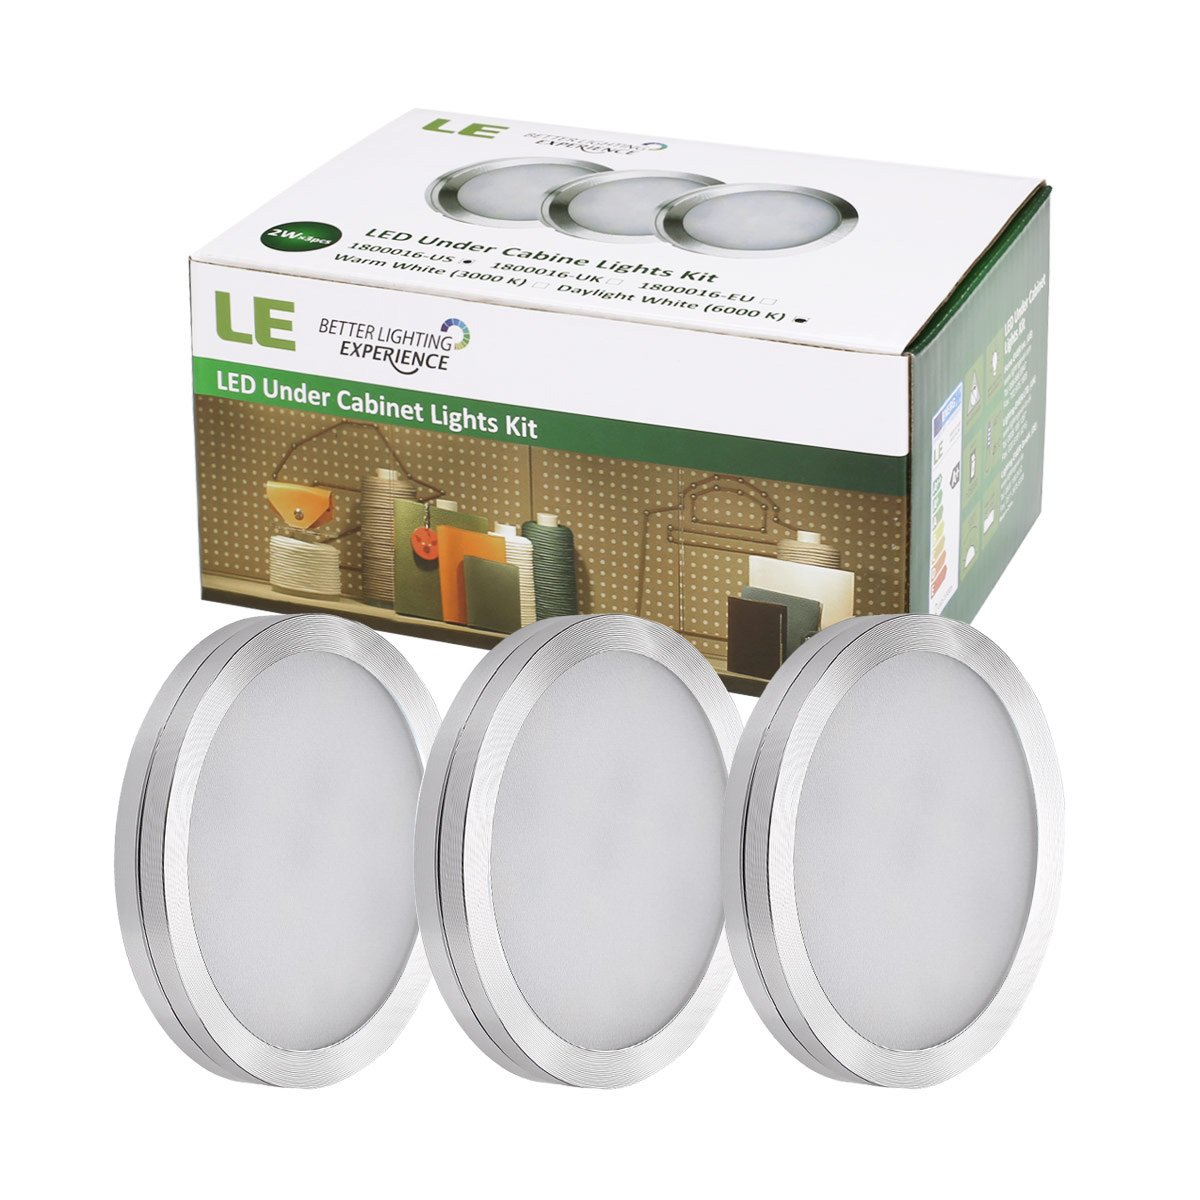 Kitchen under cabinet led lighting kits - Le Led Under Cabinet Lighting Kit 1020lm Puck Lights 2700k Warm White All Accessories Included Kitchen Closet Lights Set Of 3 Amazon Com